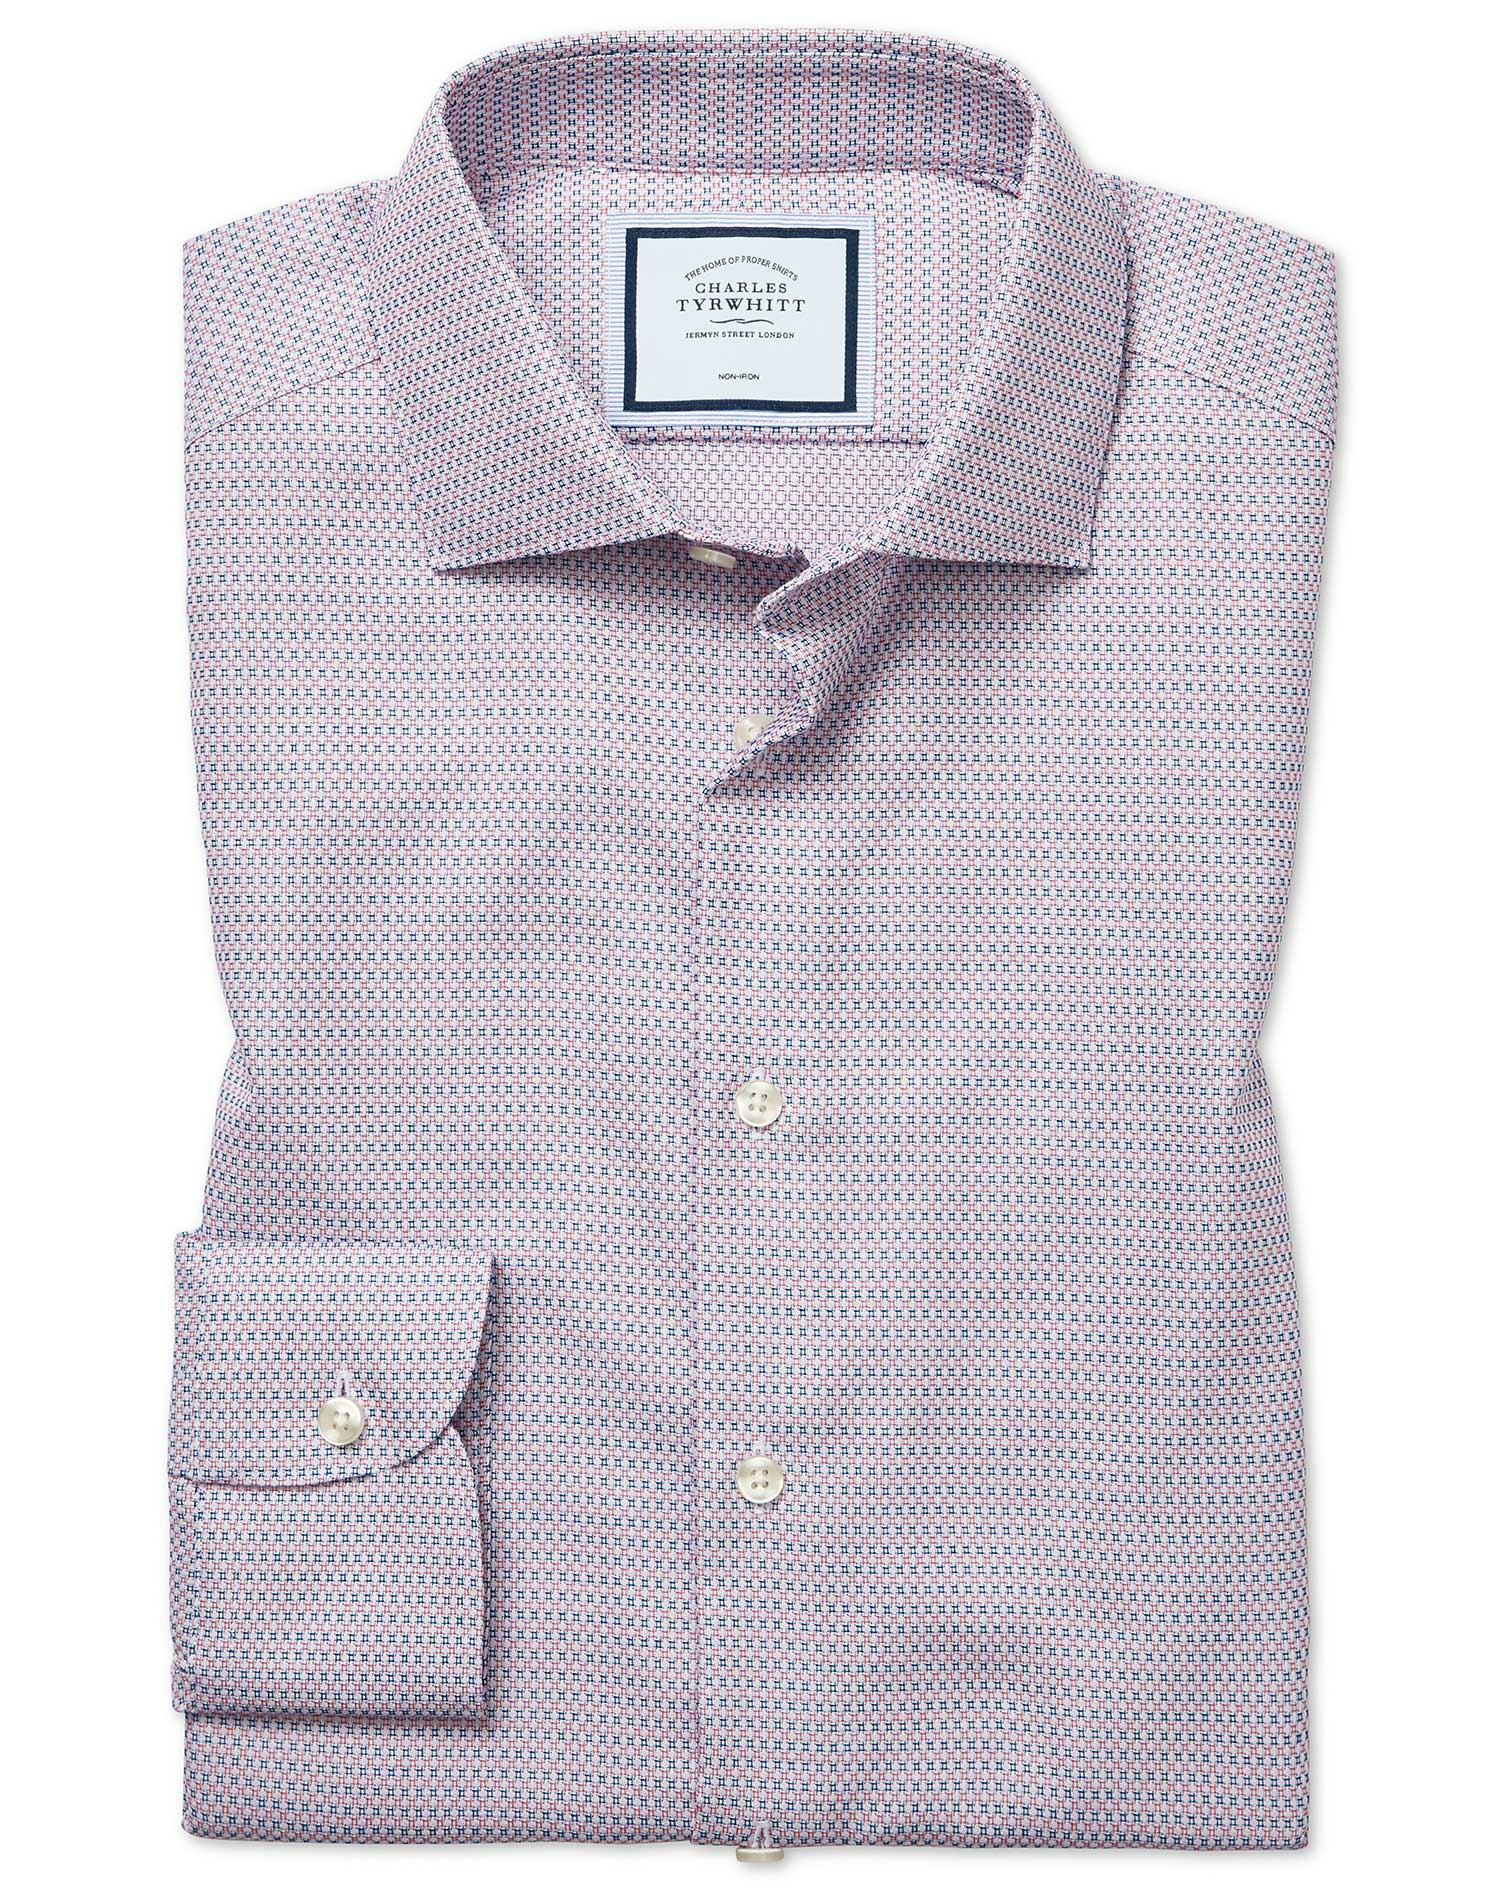 Cotton Slim Fit Non-Iron Natural Stretch Textures Pink And Navy Shirt